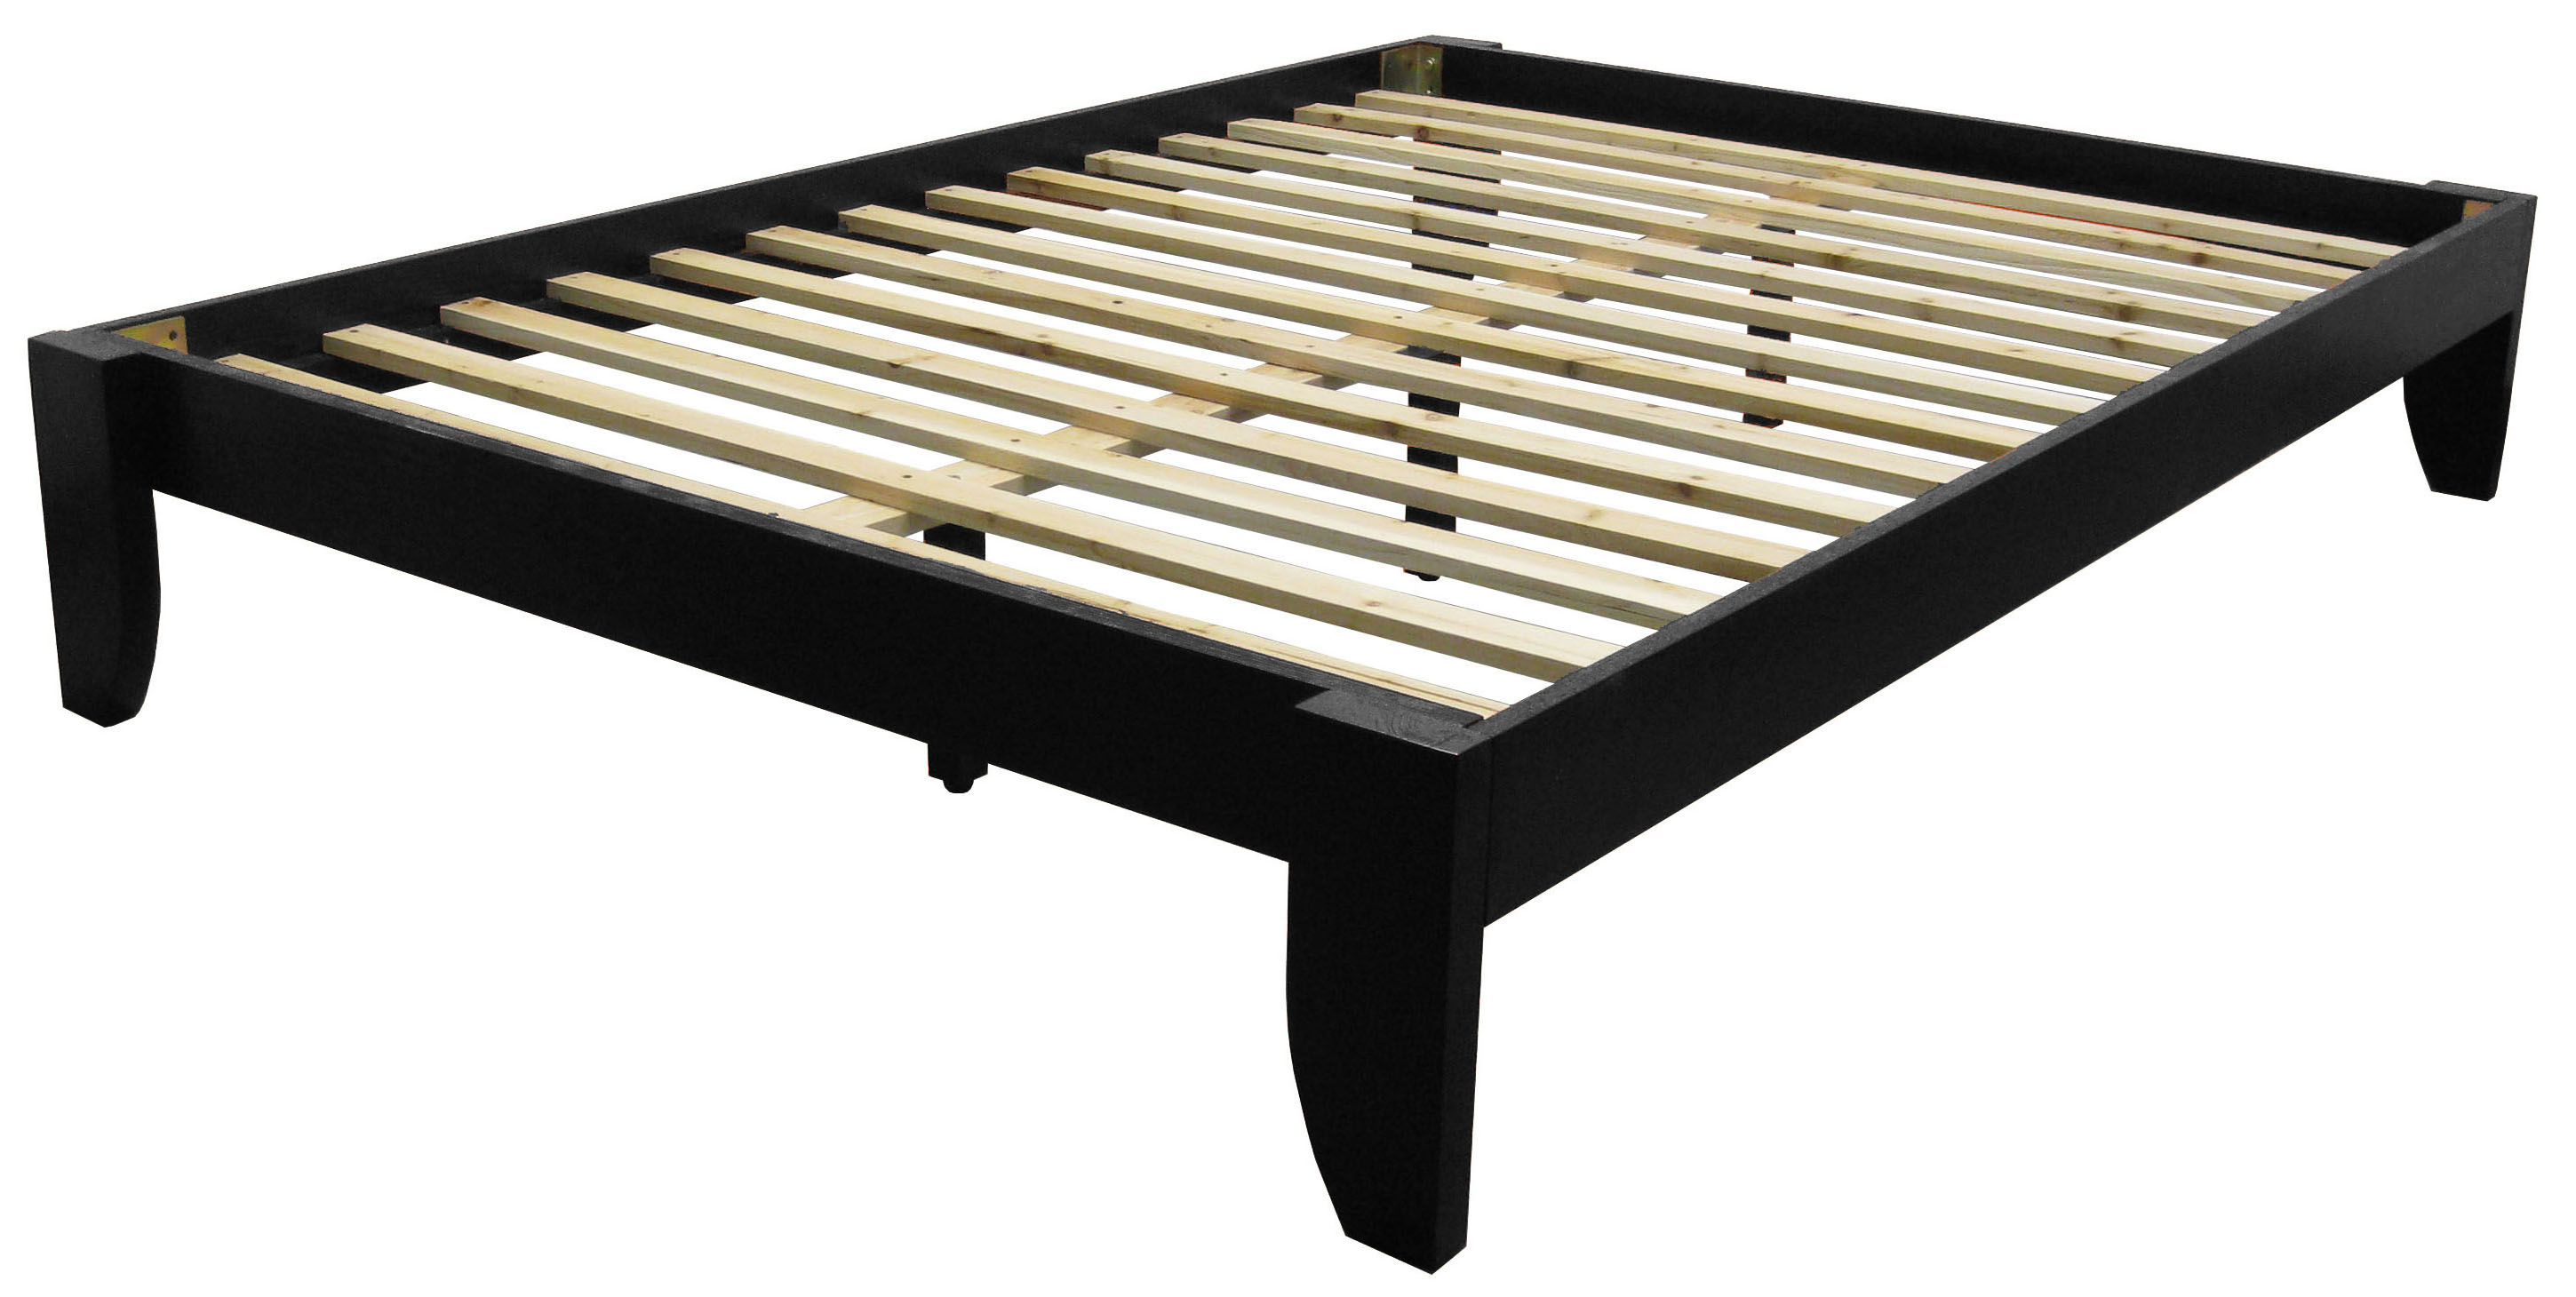 Everlast Solid Wood Bamboo Platform Bed Frame Full Size